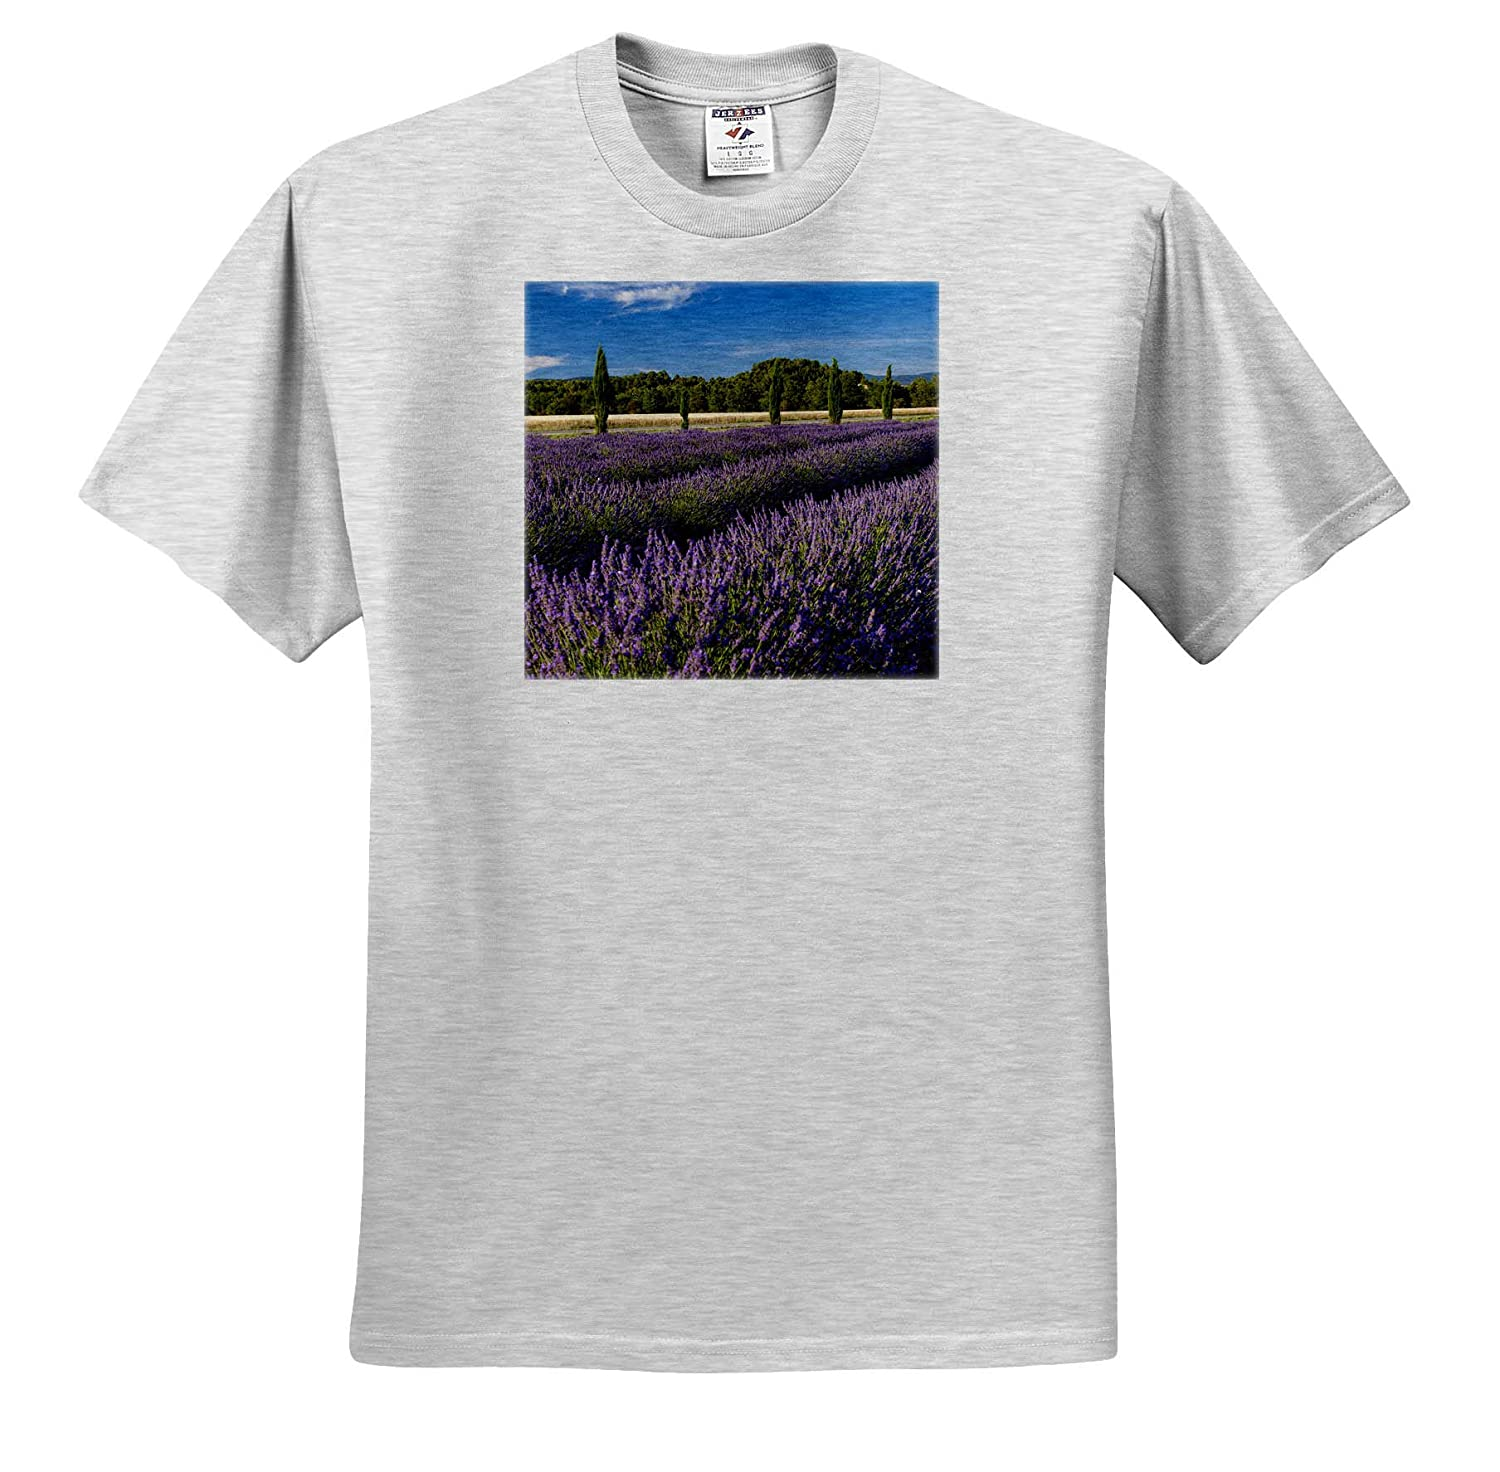 Provence France ts/_313107 3dRose Danita Delimont Rows of Lavender Provence Adult T-Shirt XL